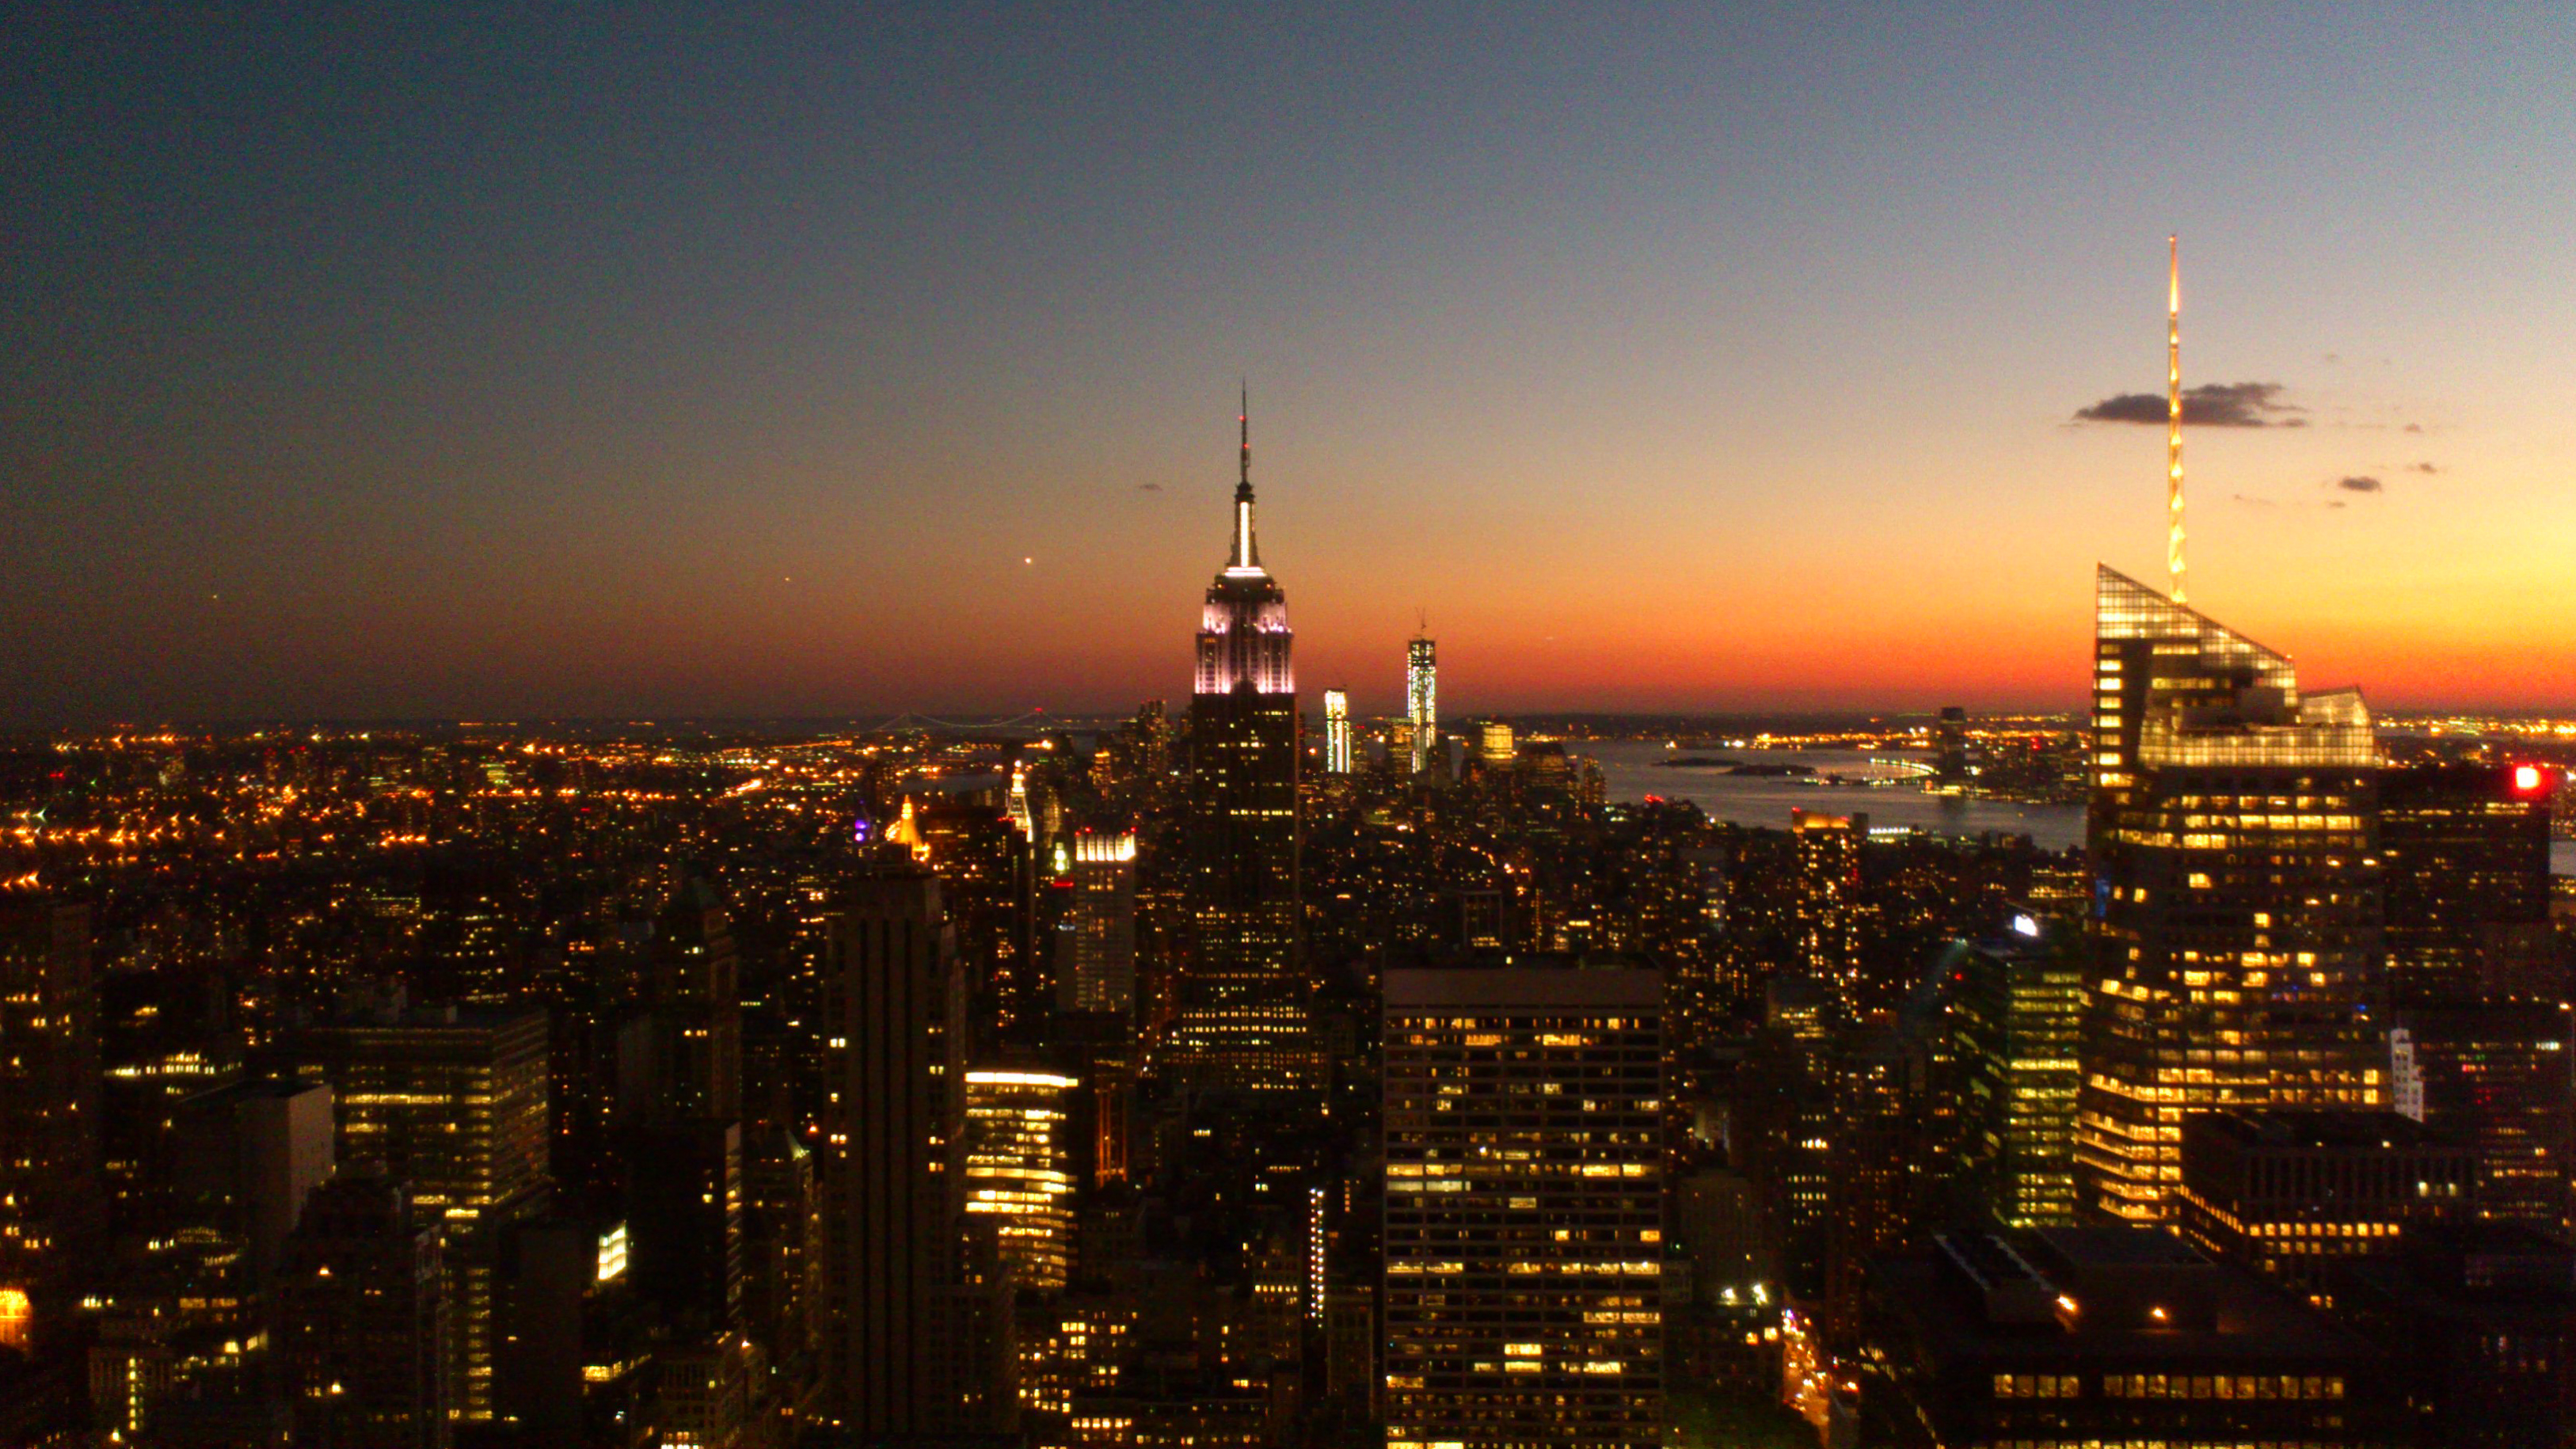 empire state building sunset - photo #19